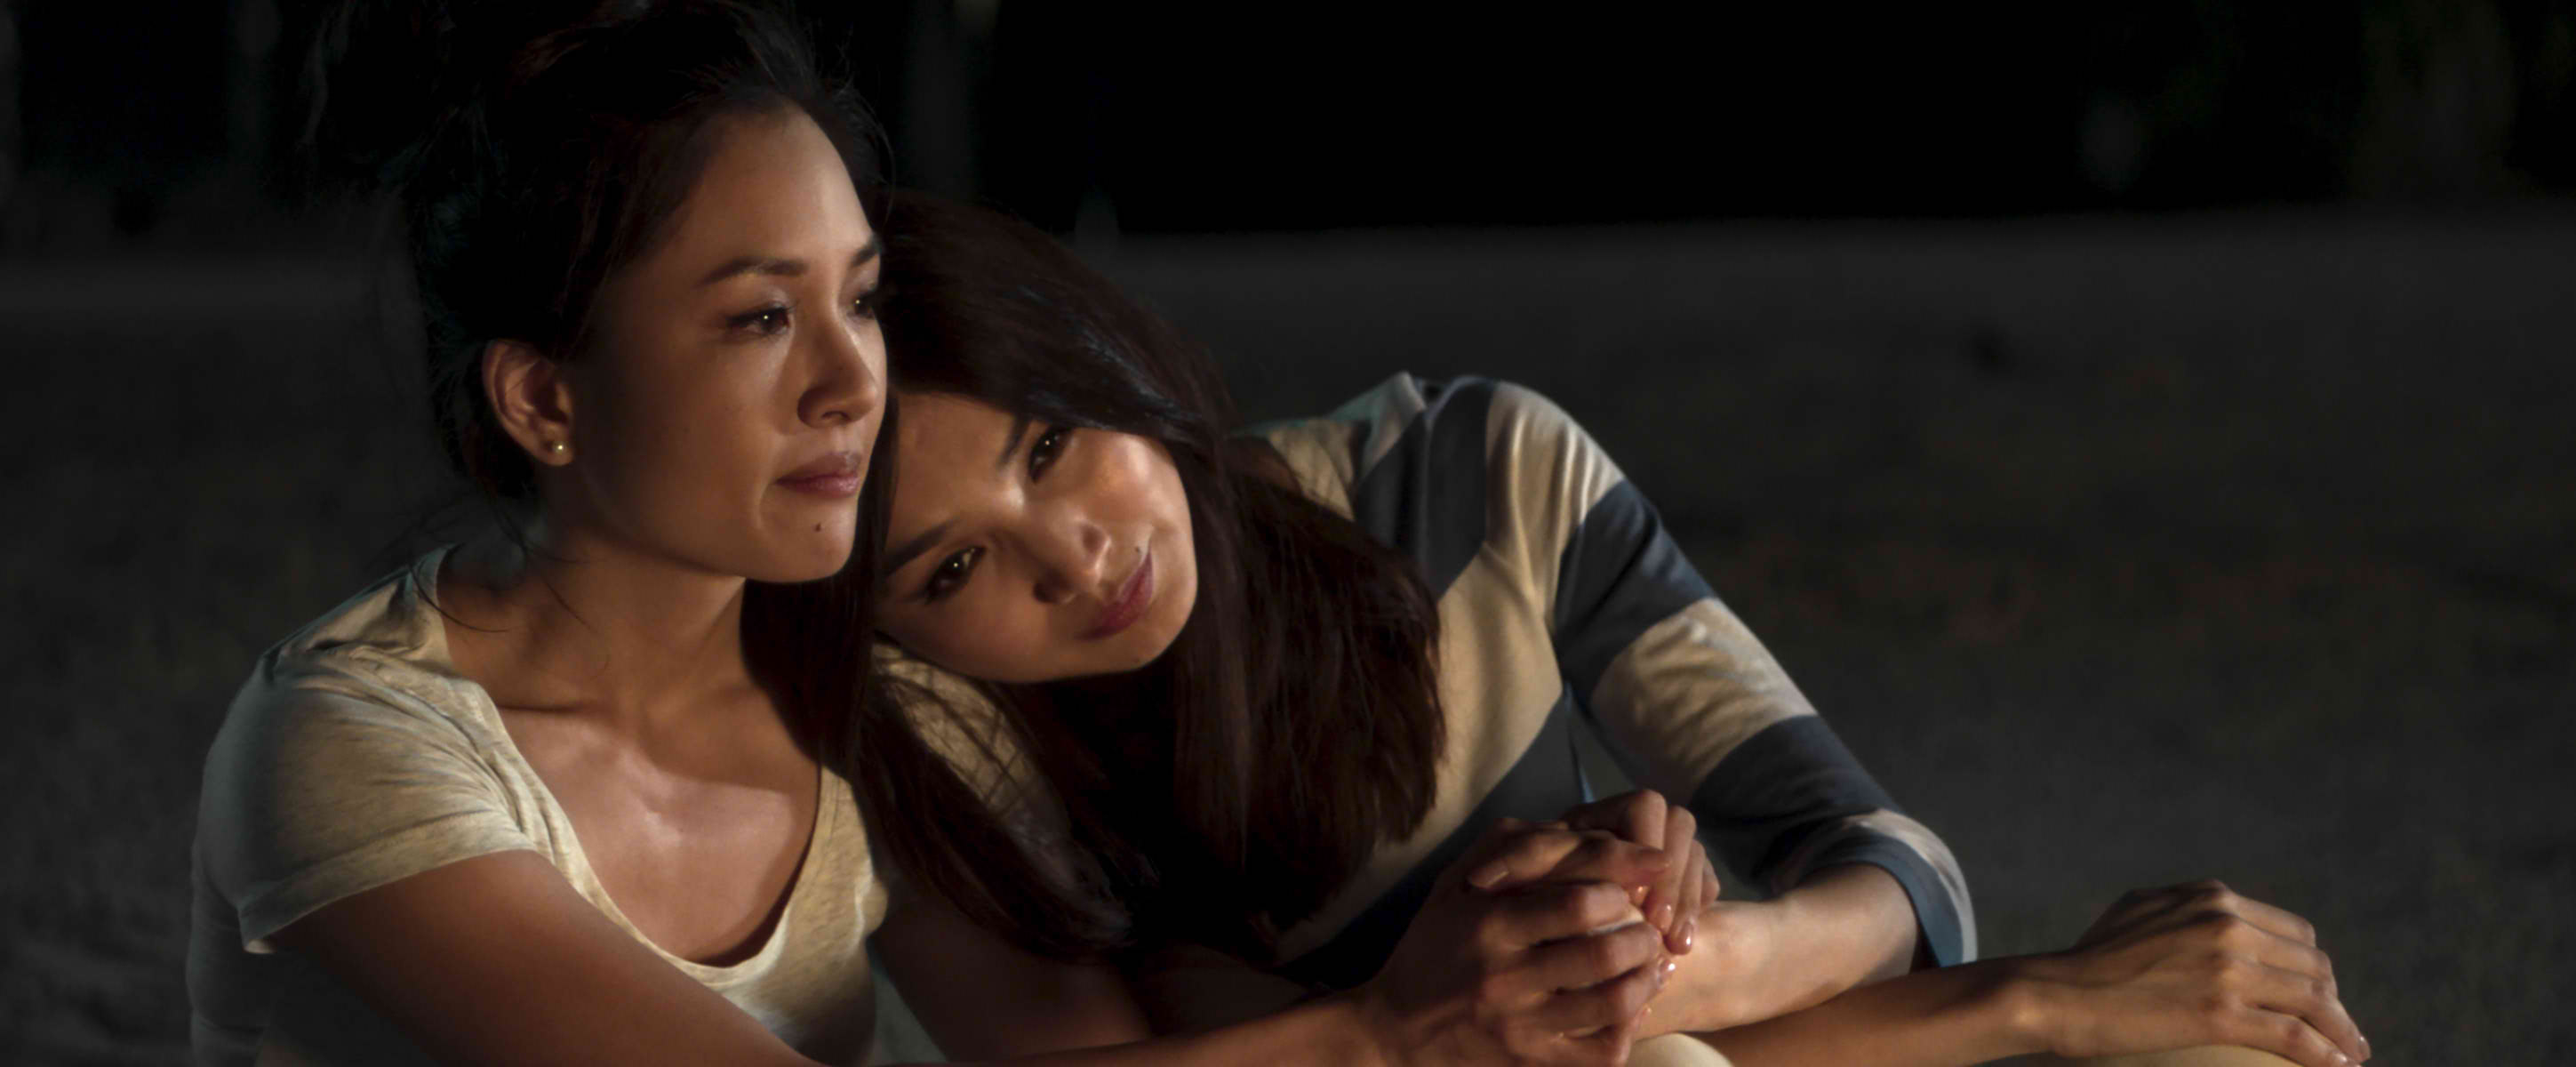 The power of women shines through in Crazy Rich Asians. | Credit: Warner Bros. Pictures